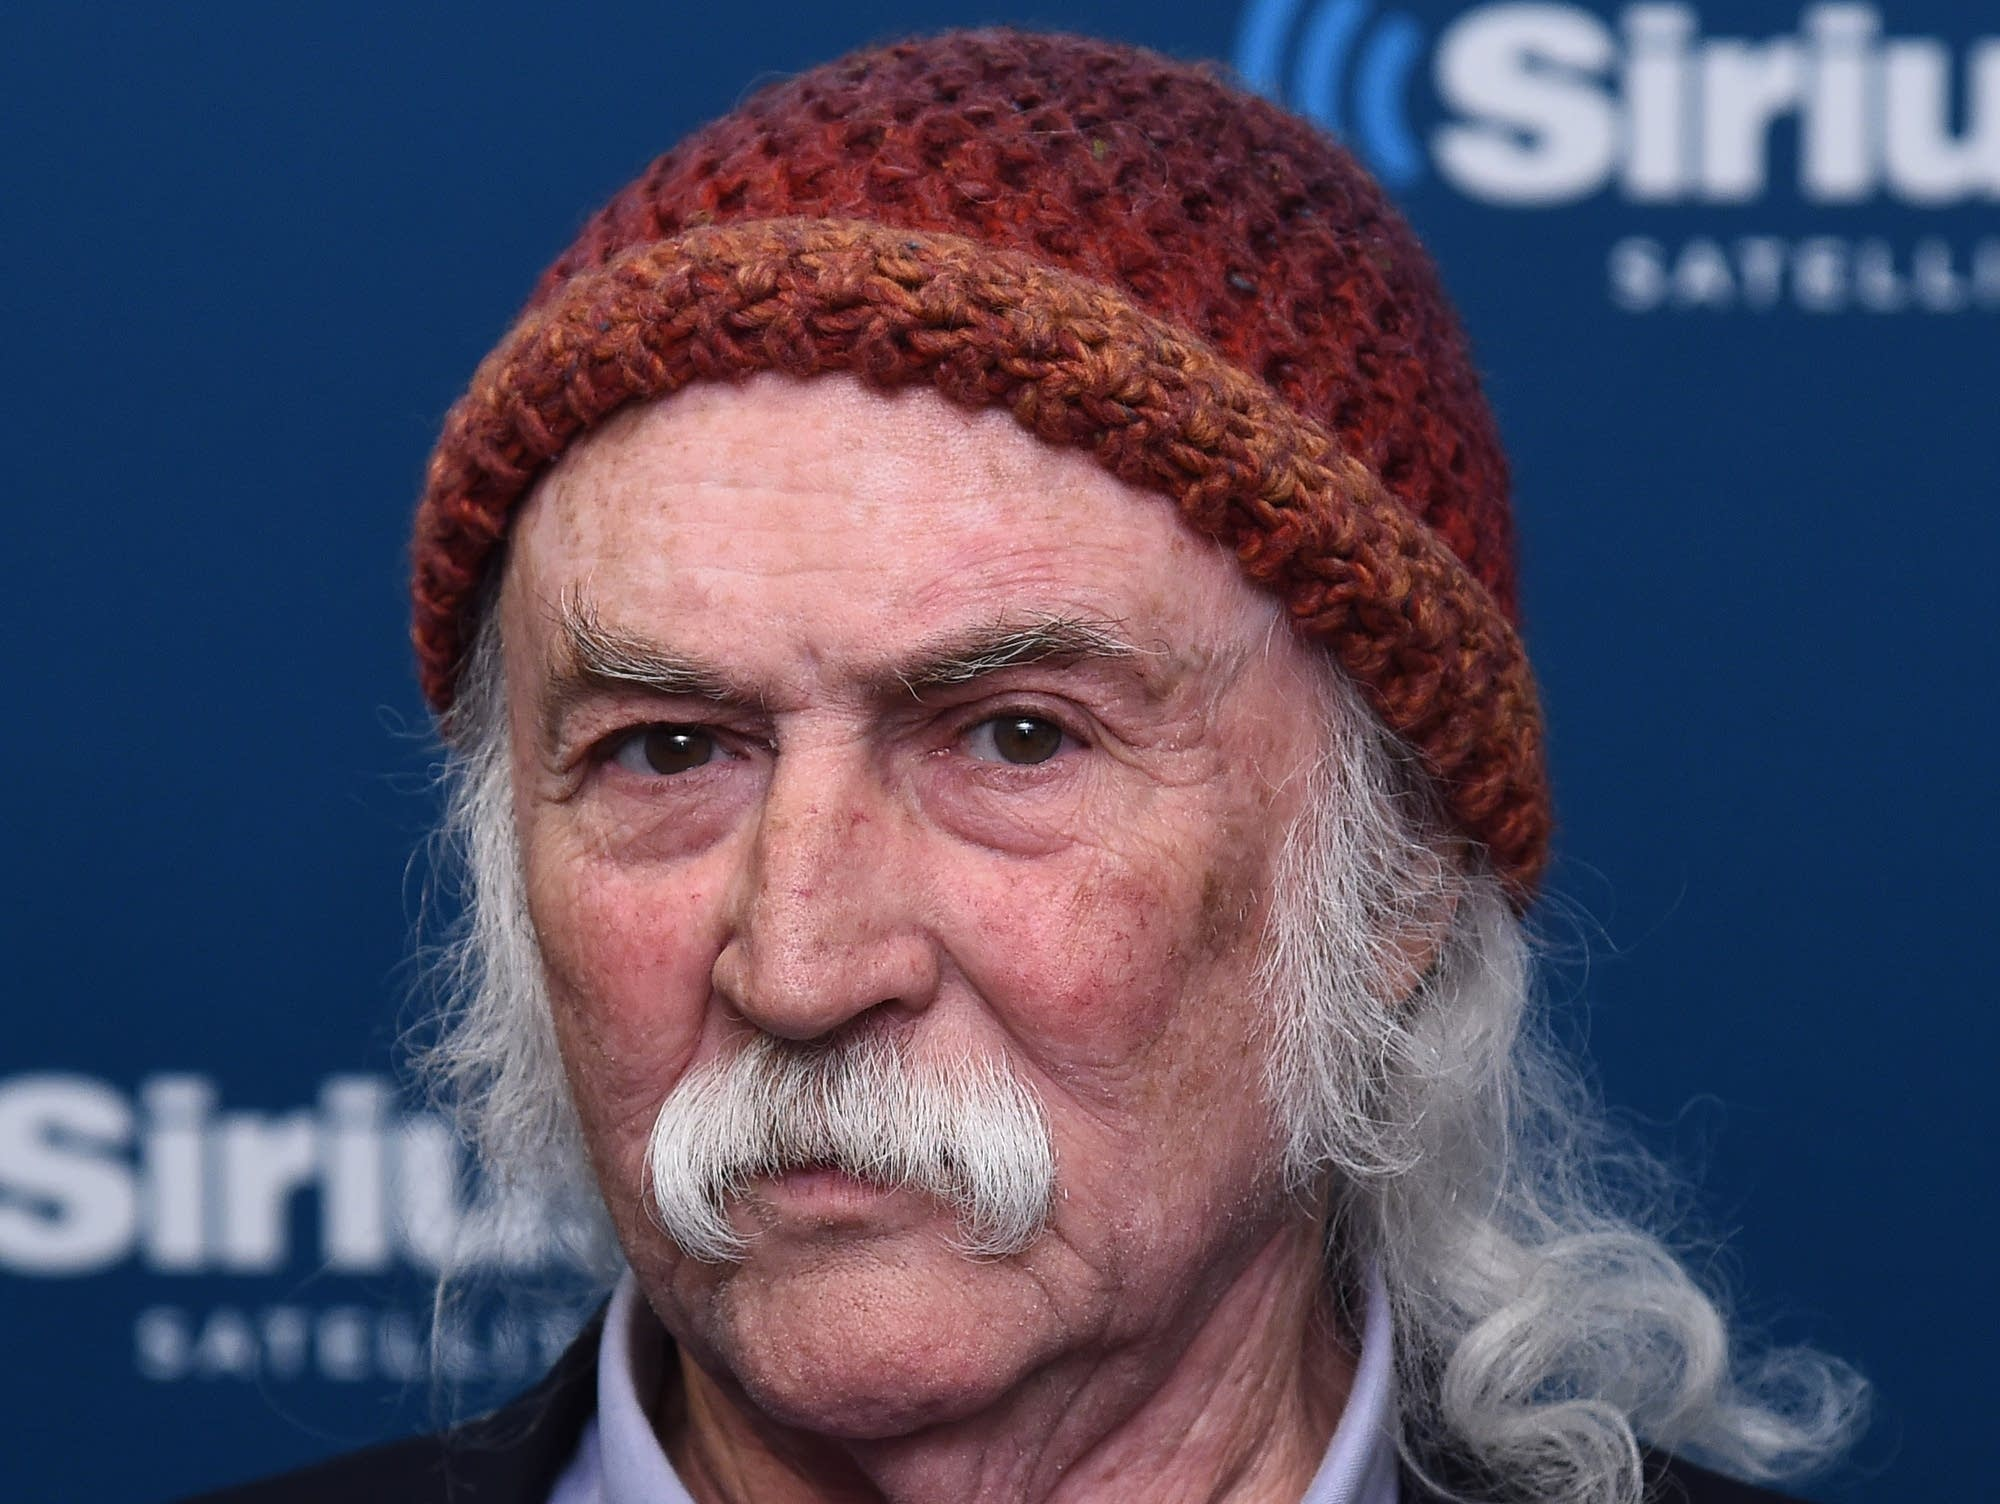 David Crosby in New York, 2016.